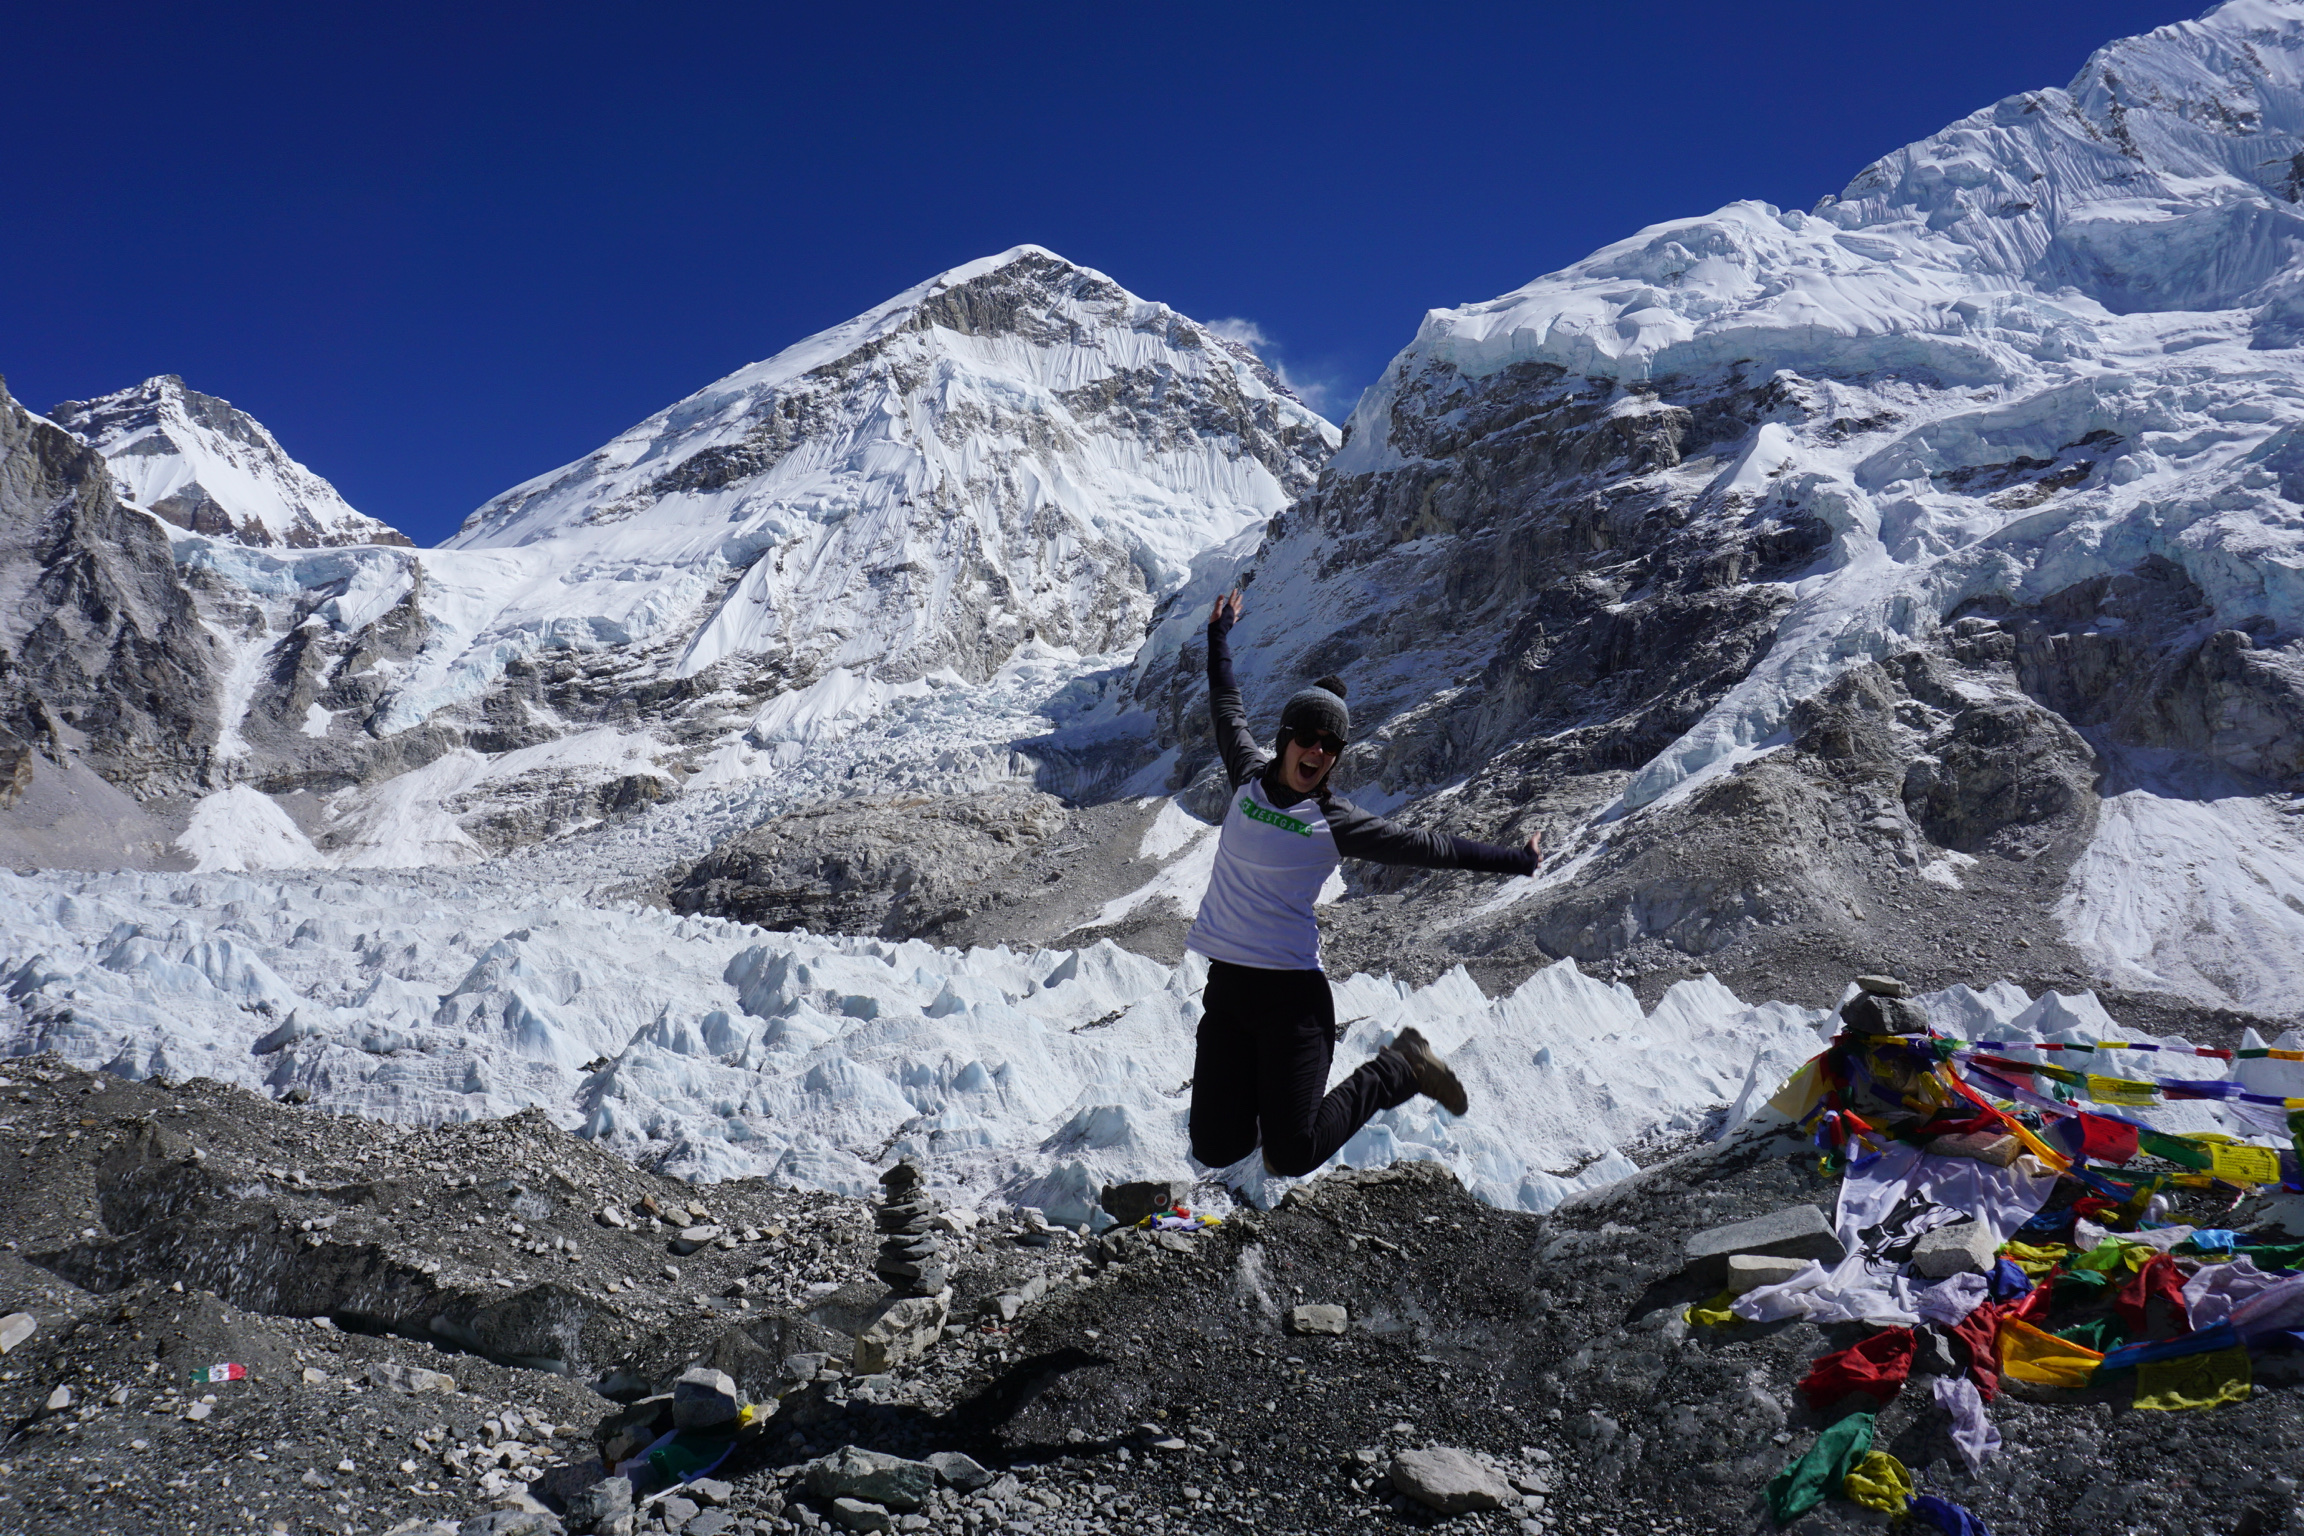 Jess rocking her Westgate top at Mt Everest Base Camp (5530m)